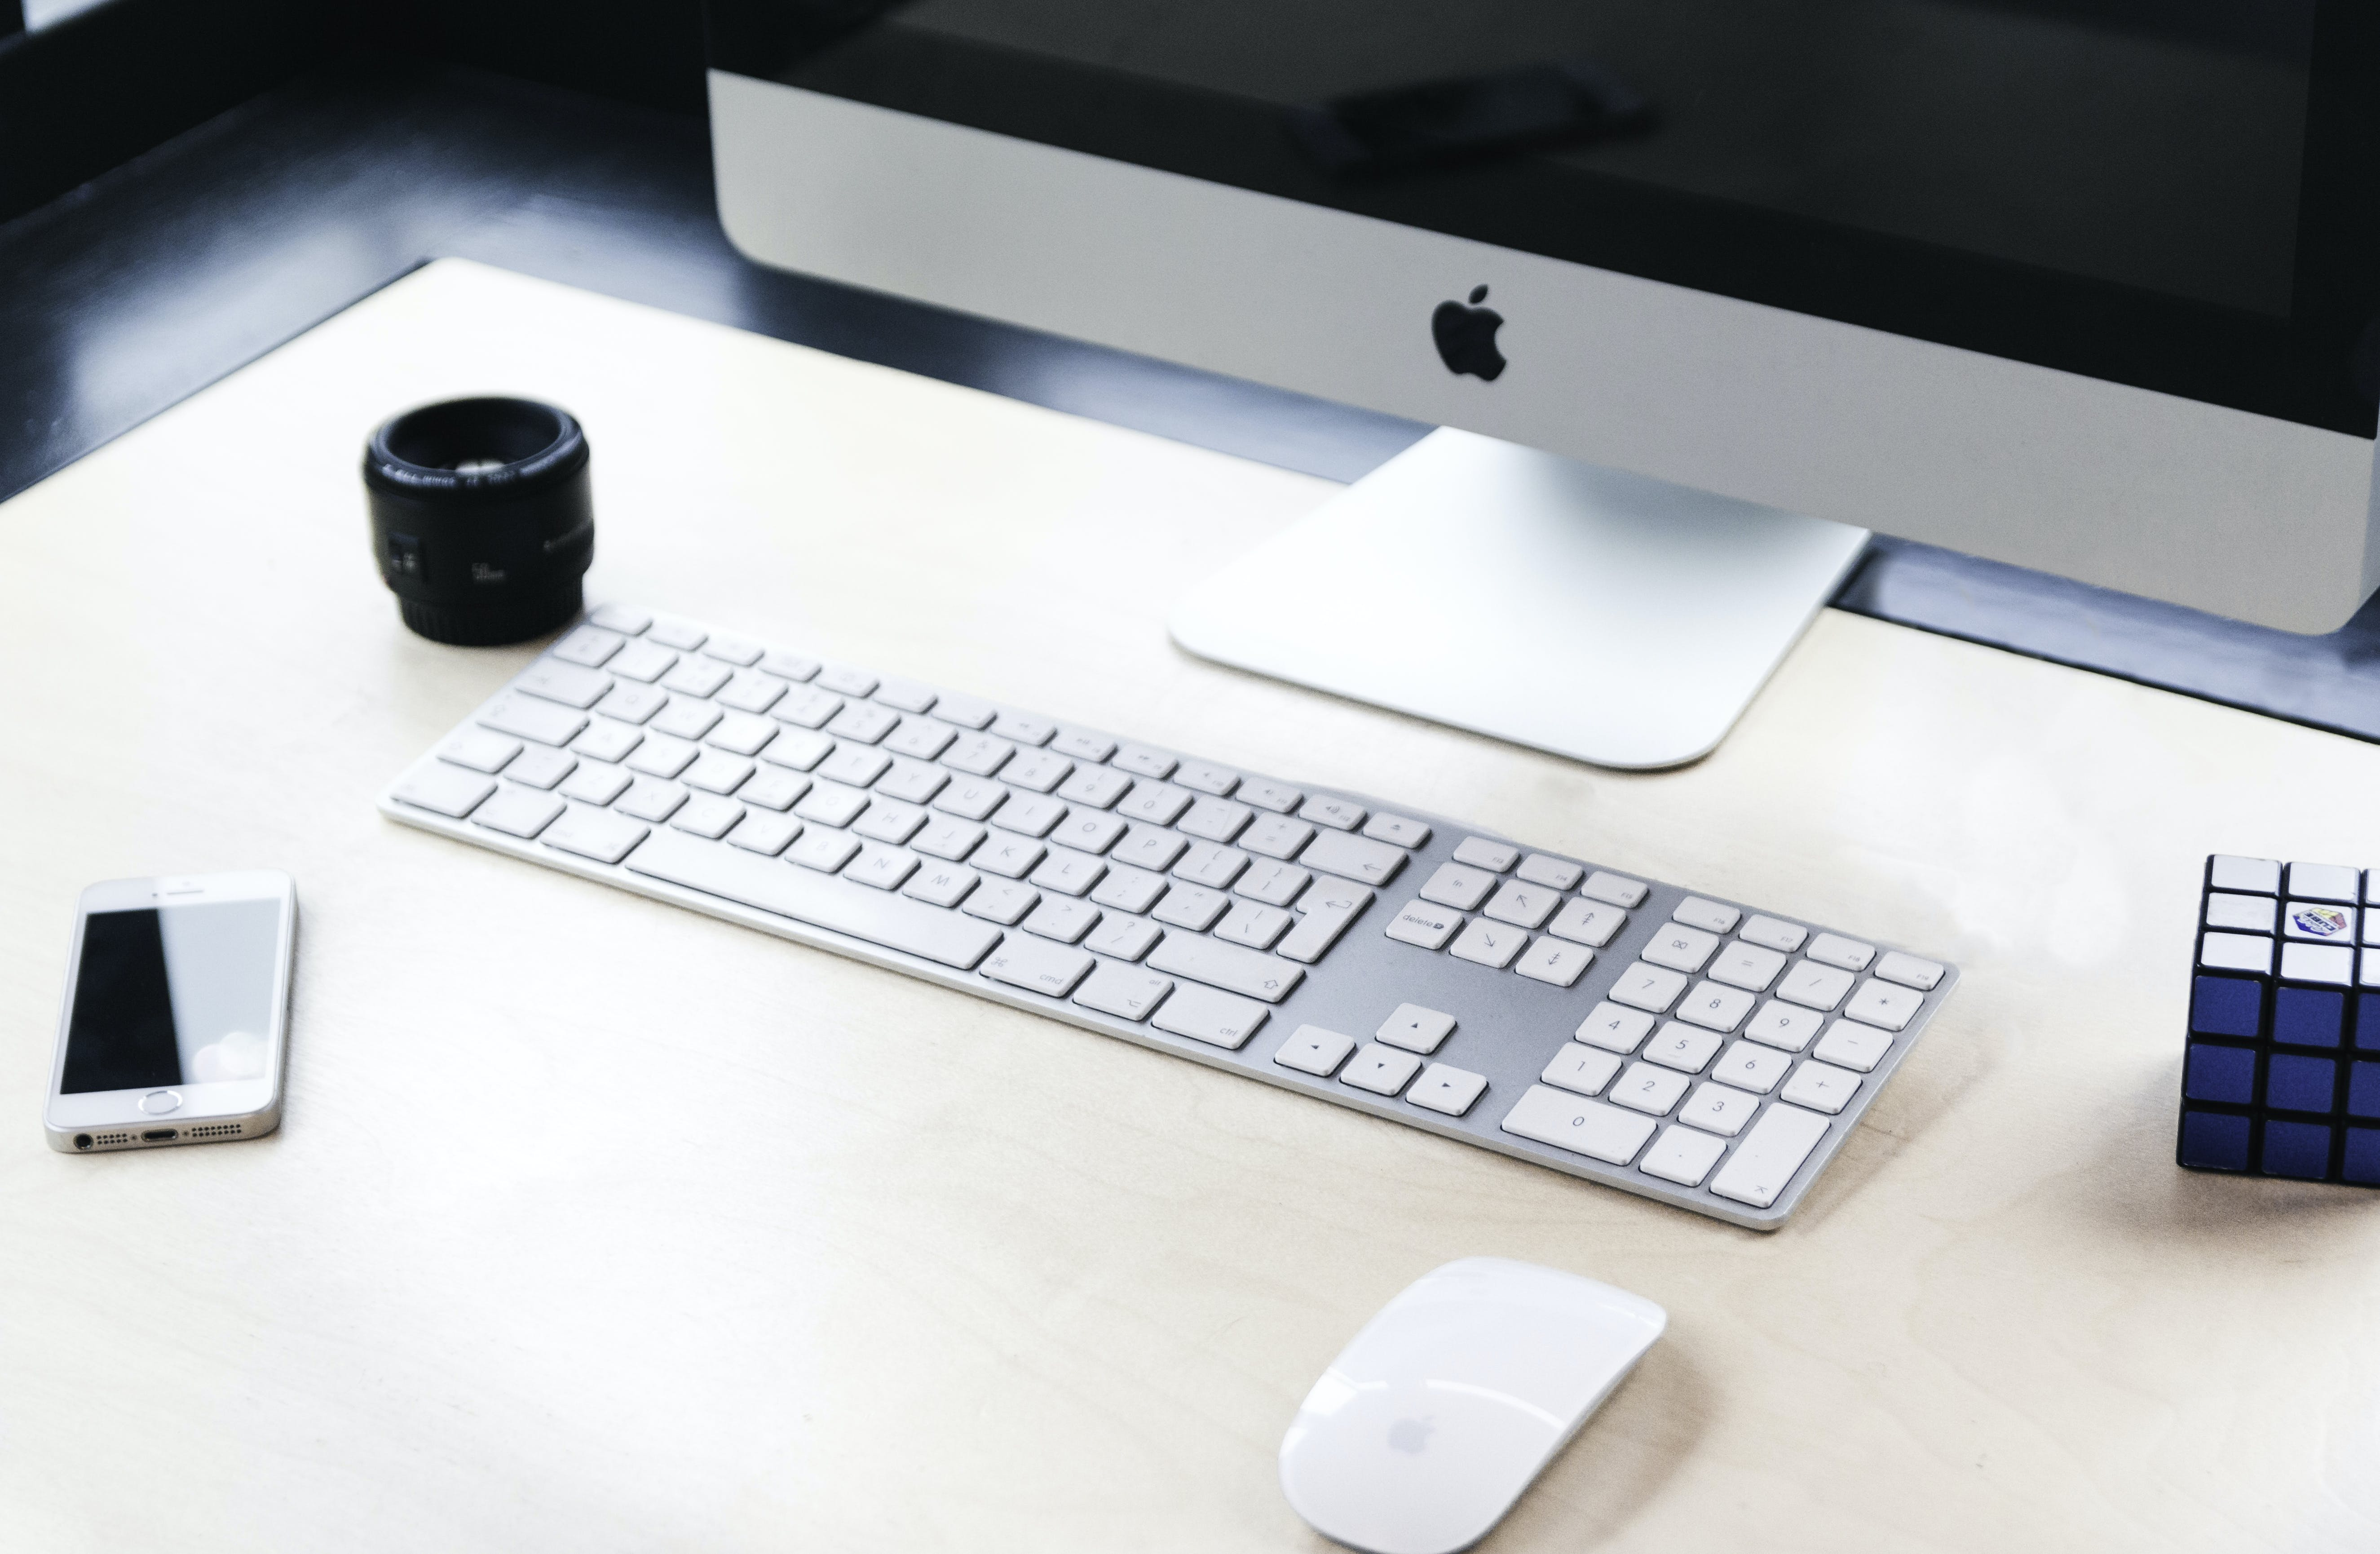 Imac Beside Apple Wireless Keyboard And Magic Mouse